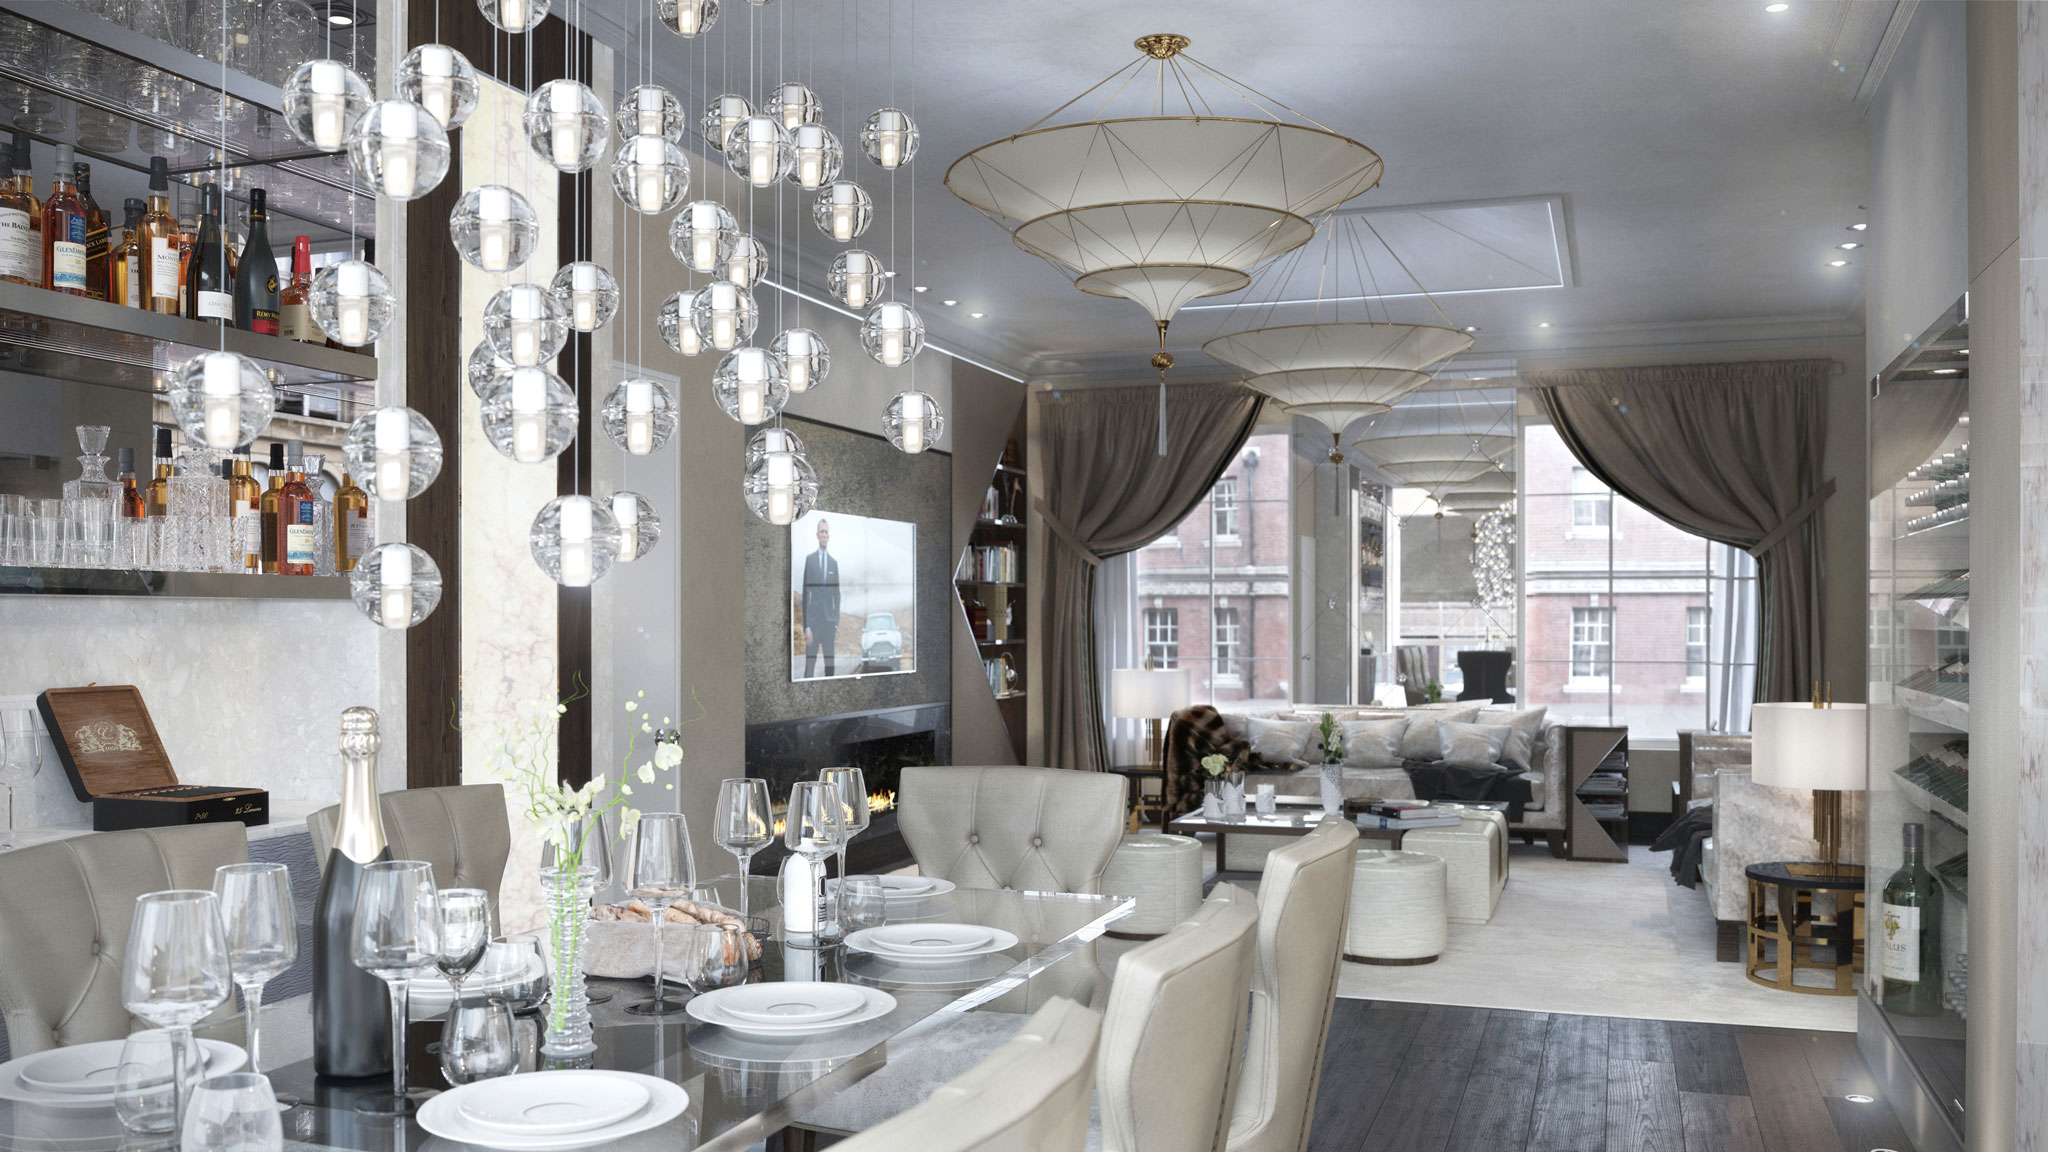 161 LONDON, MAYFAIR  COLLABORATion WITH THE MULTI-AWARD WINNING Luxury Interior Design AND London Property Developer 161 LONDON